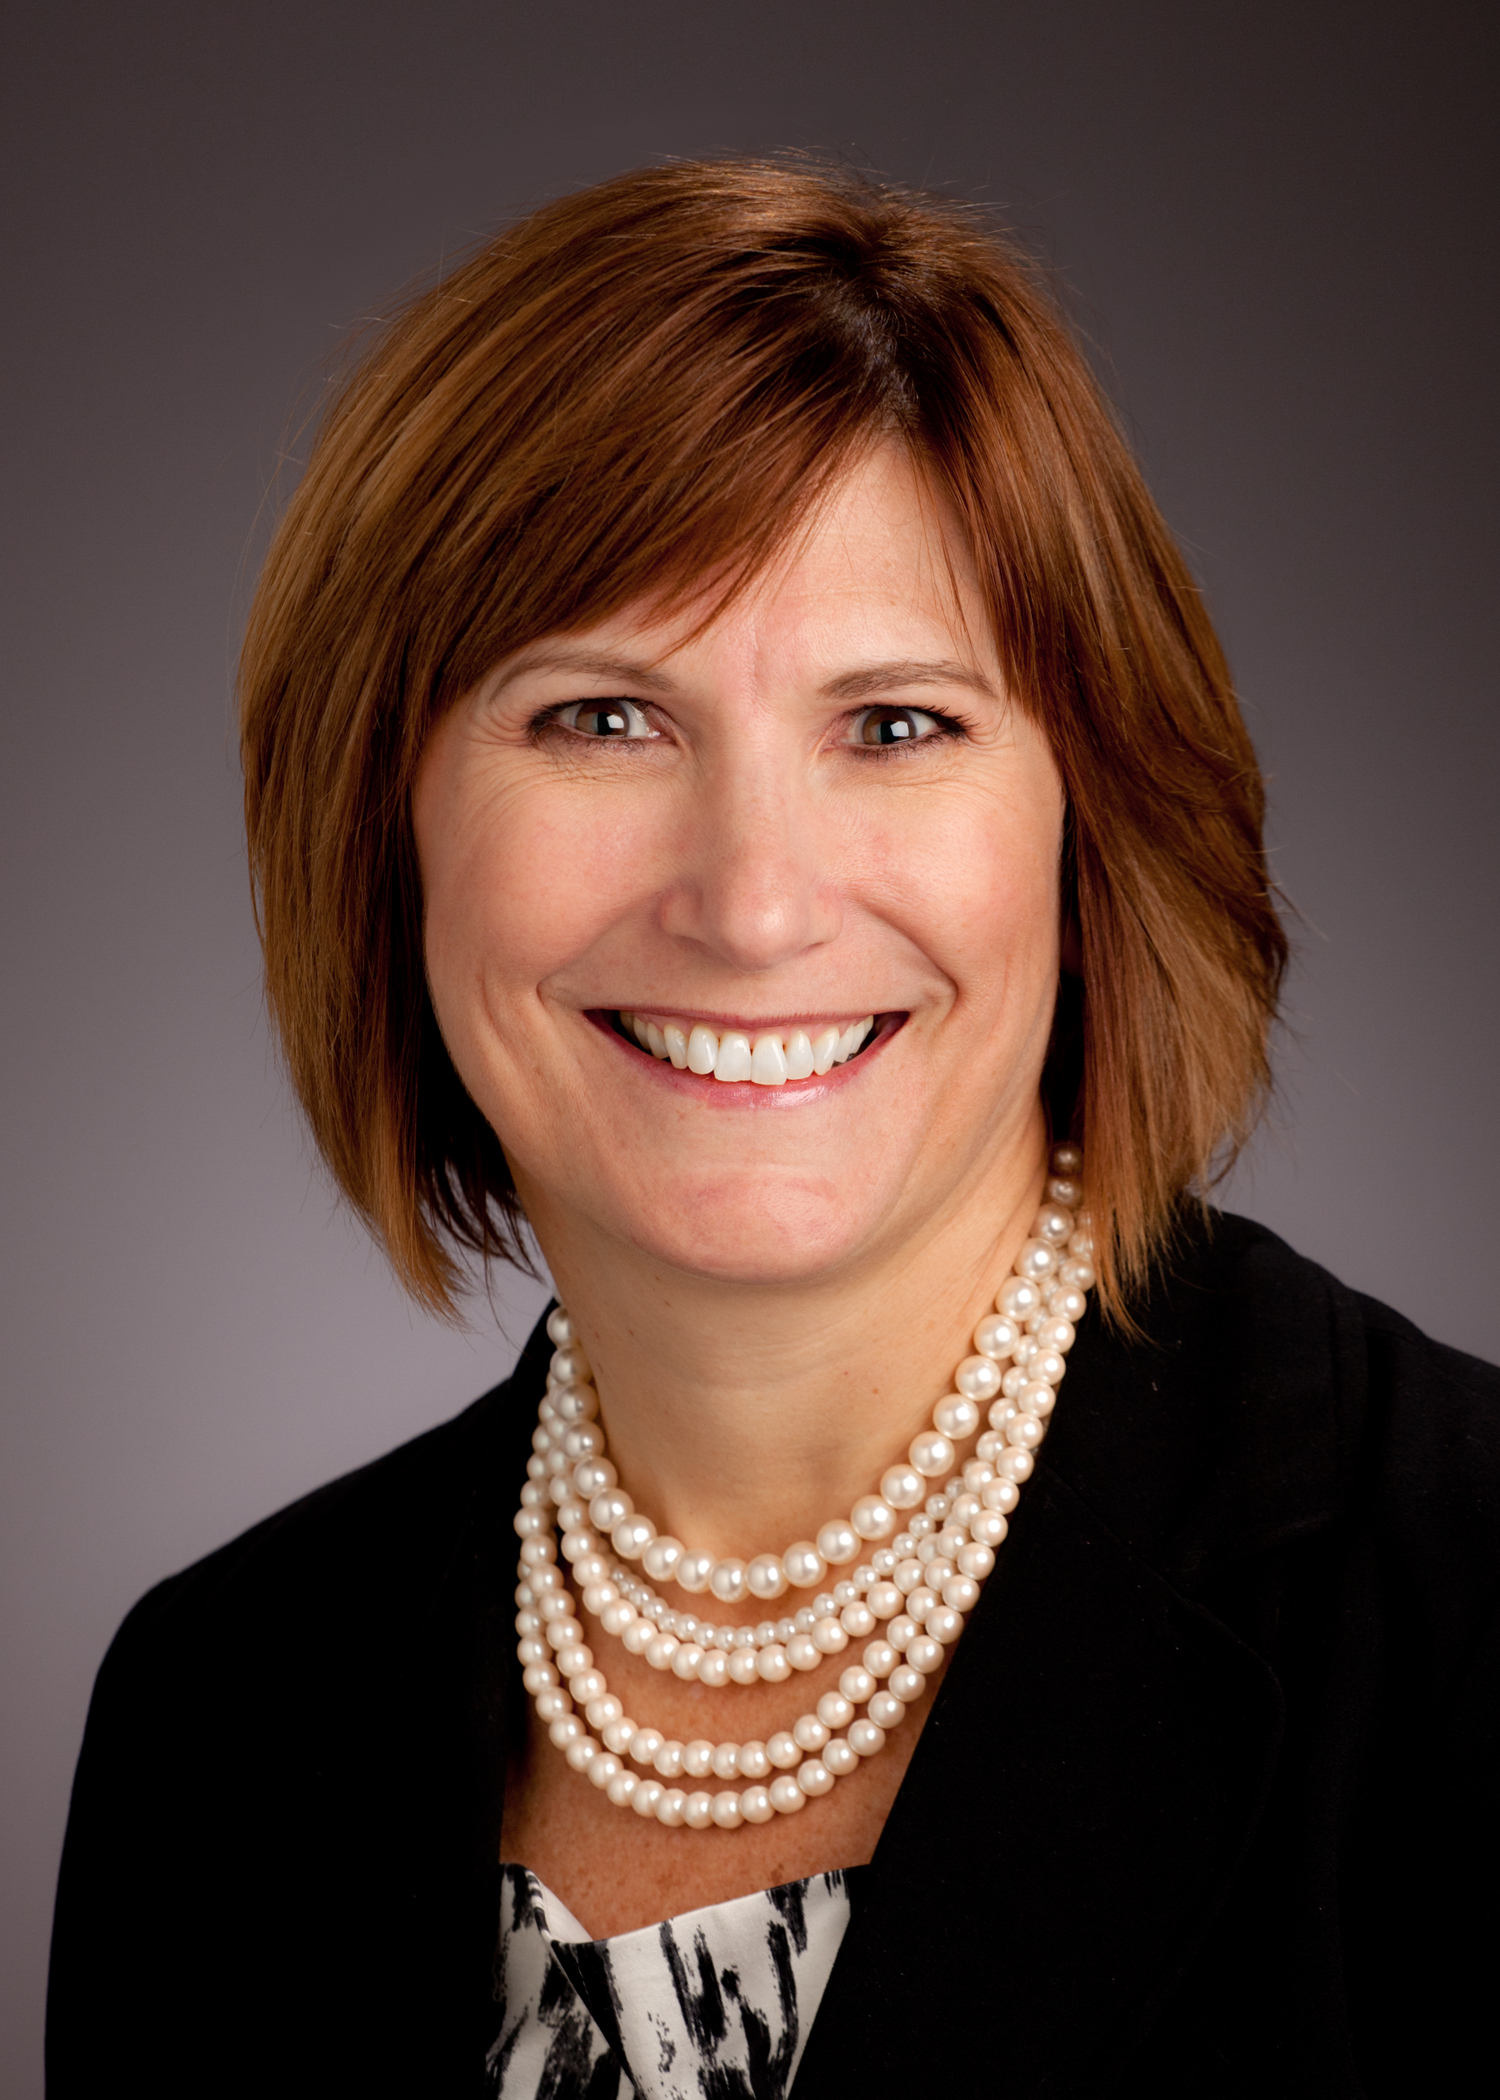 Robyn Heidger was promoted to Senior Vice President, Community Development at Enterprise Bank & Trust.